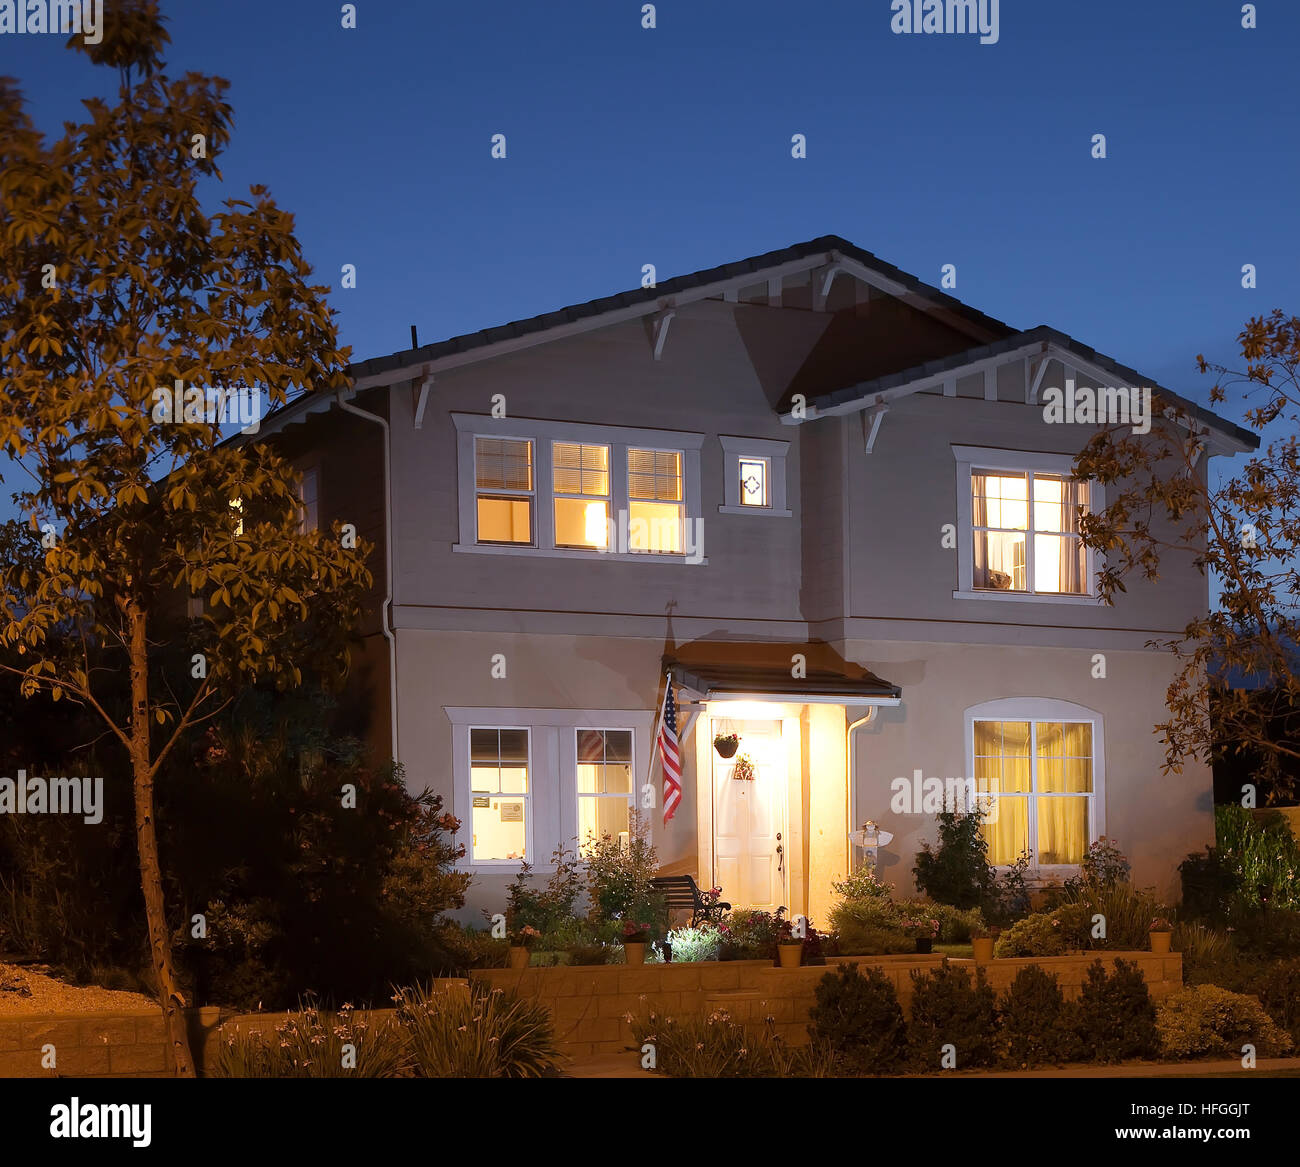 Two Story Suburban House At Night With American Flag In San Diego CA US